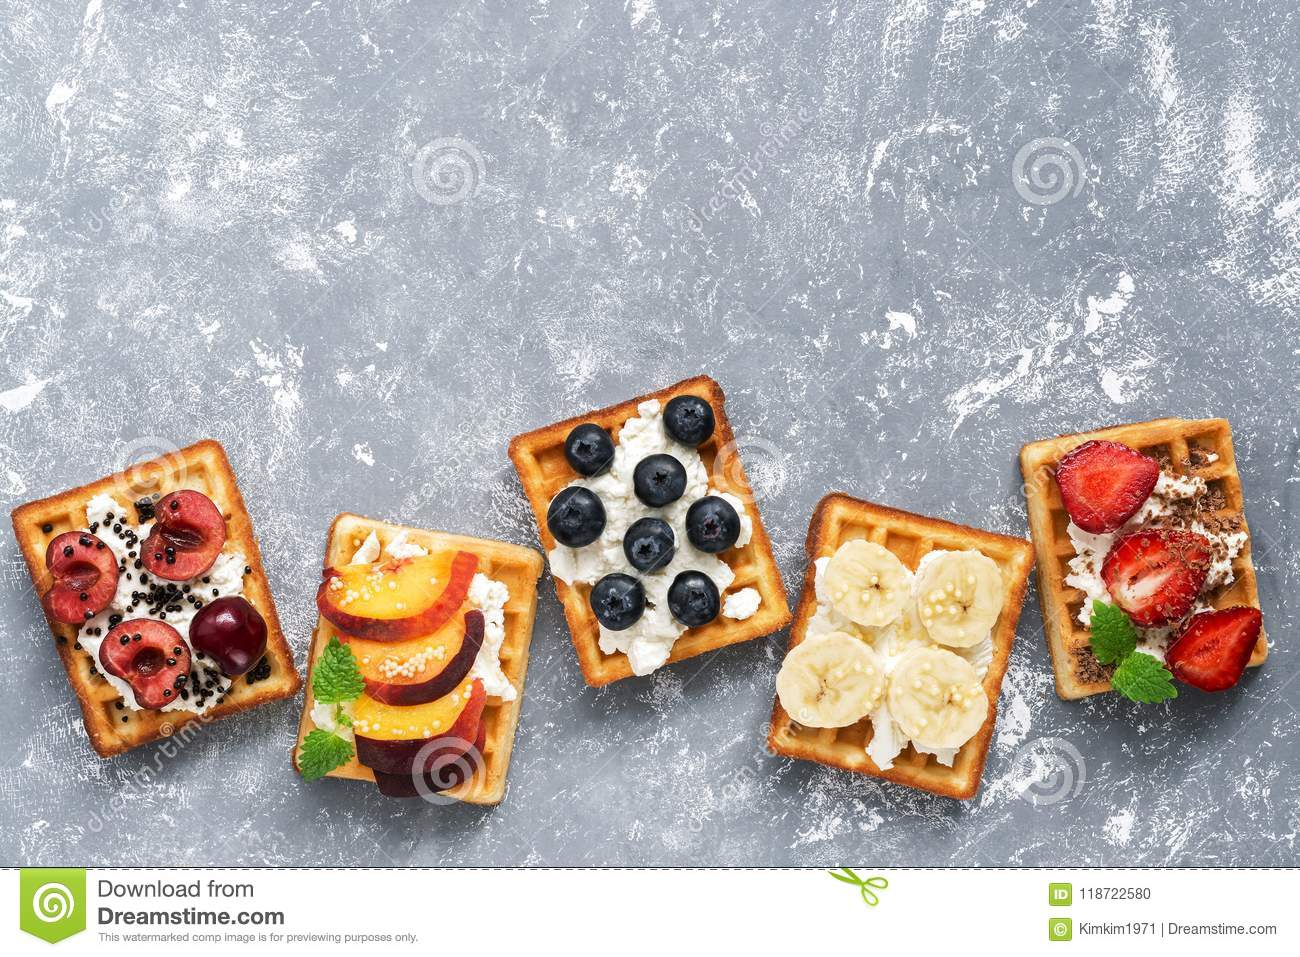 Homemade Belgian waffles with a variety of fruits on a gray background. Top view, copy space.